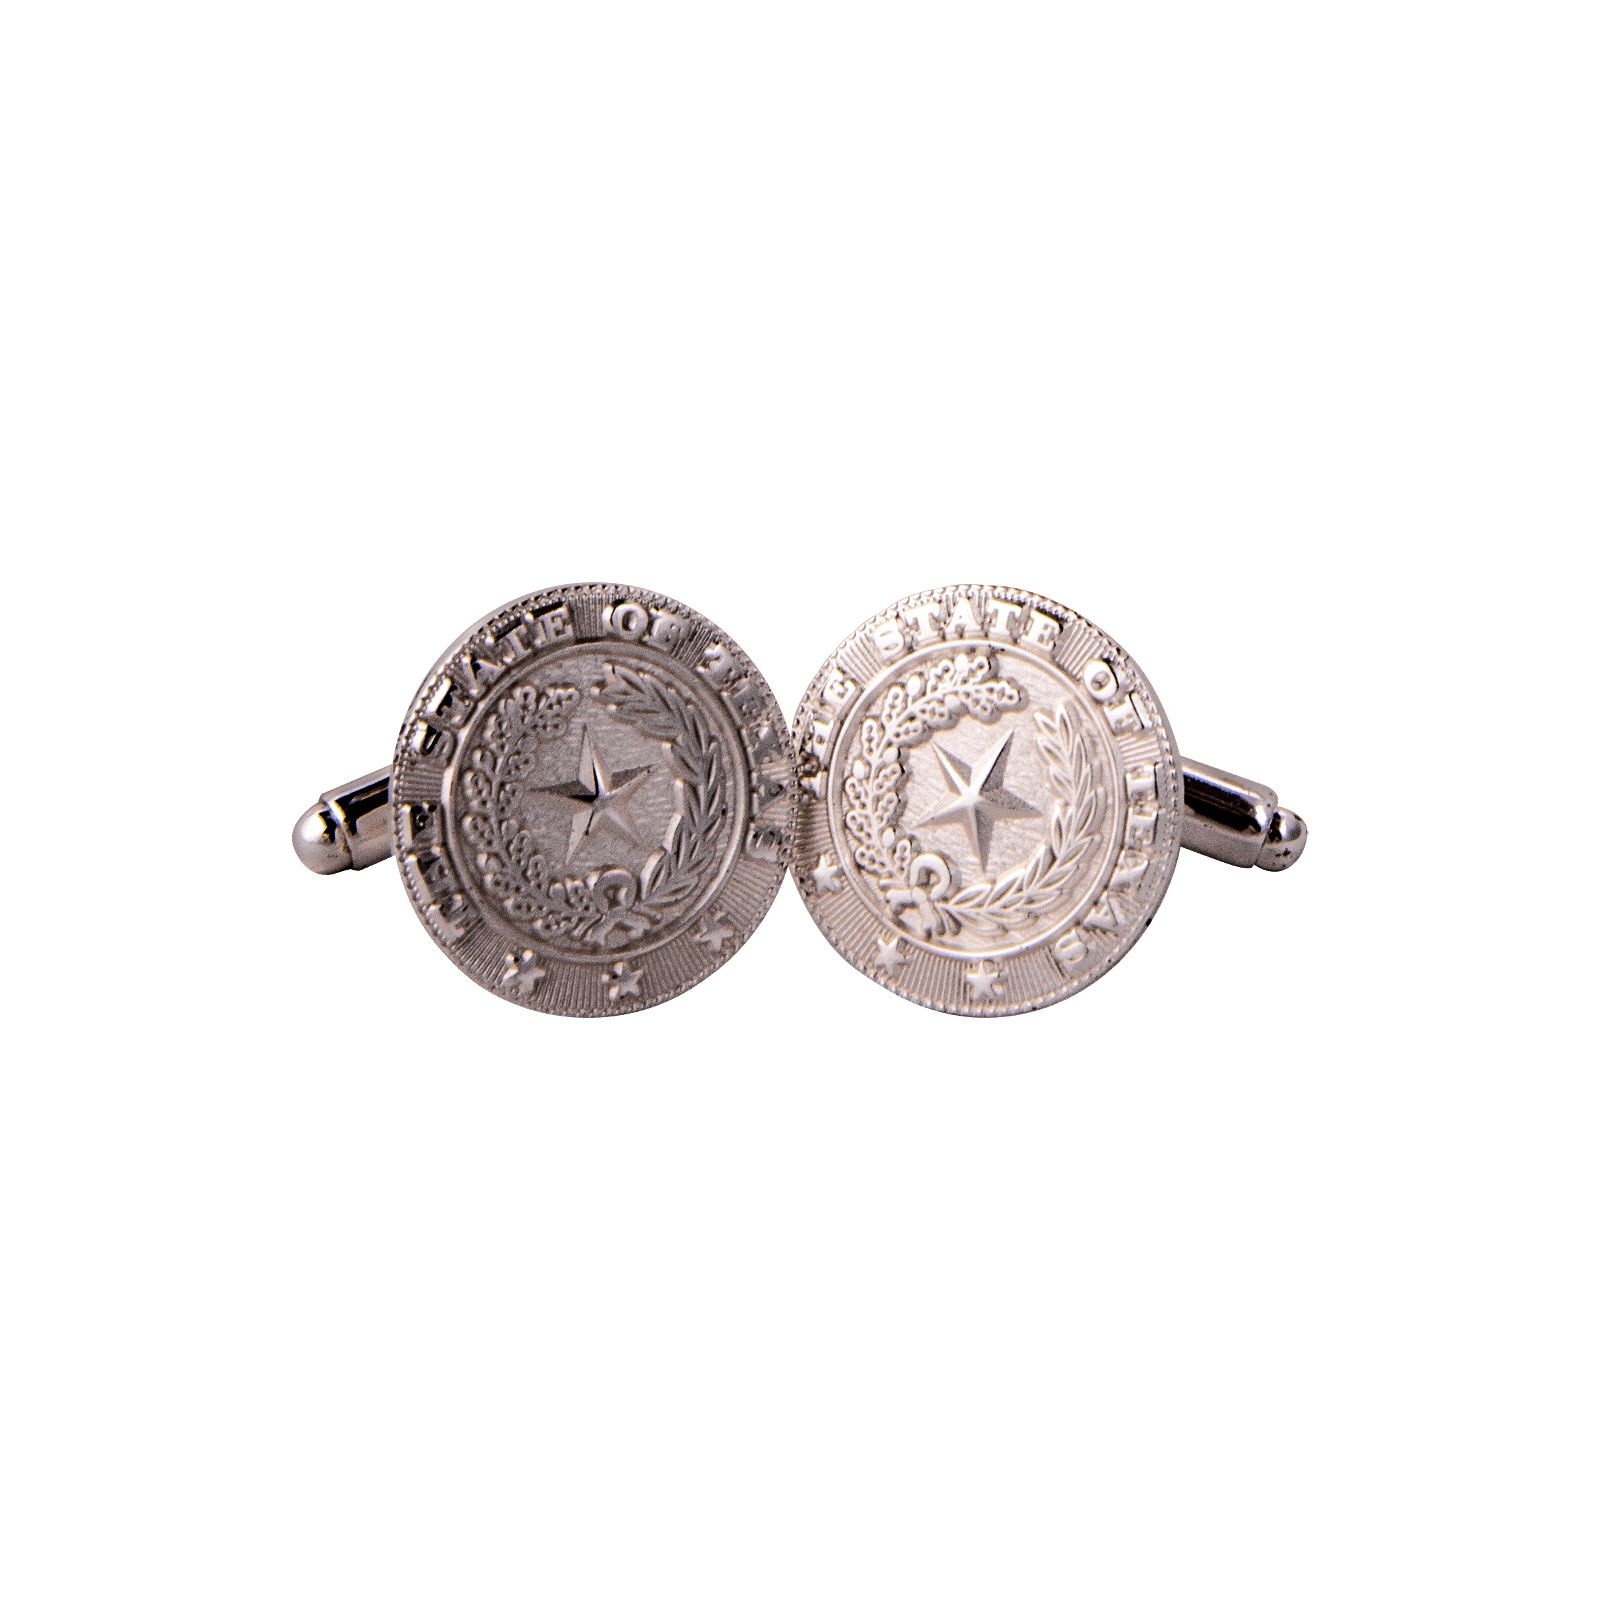 Texas State Seal Silver-Plated Cuff Links